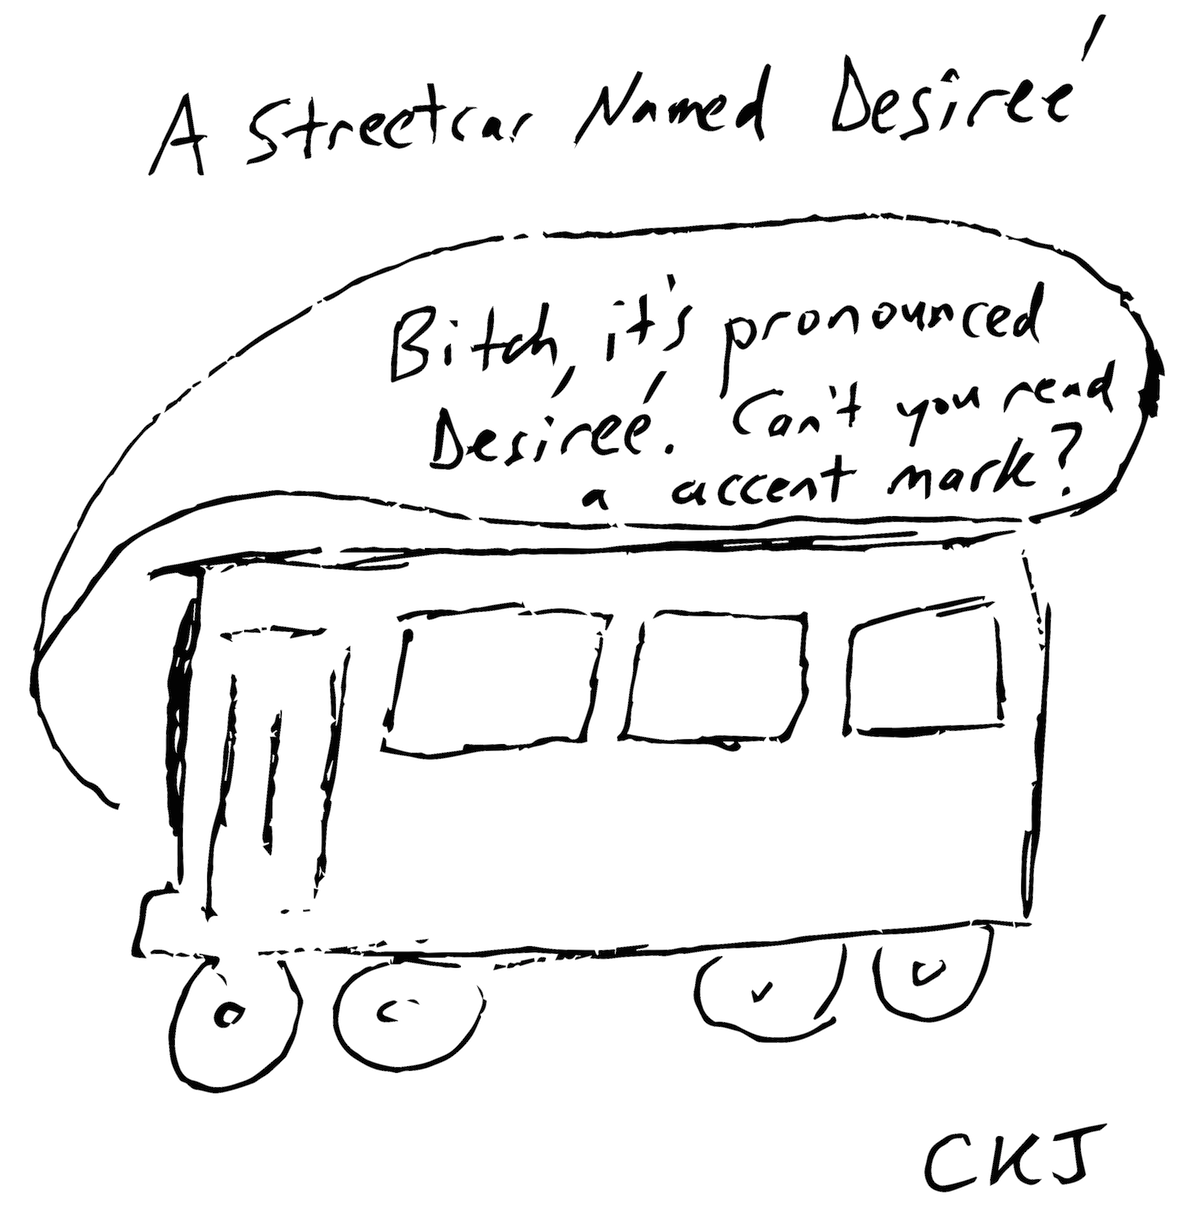 streetcar named desiree.png